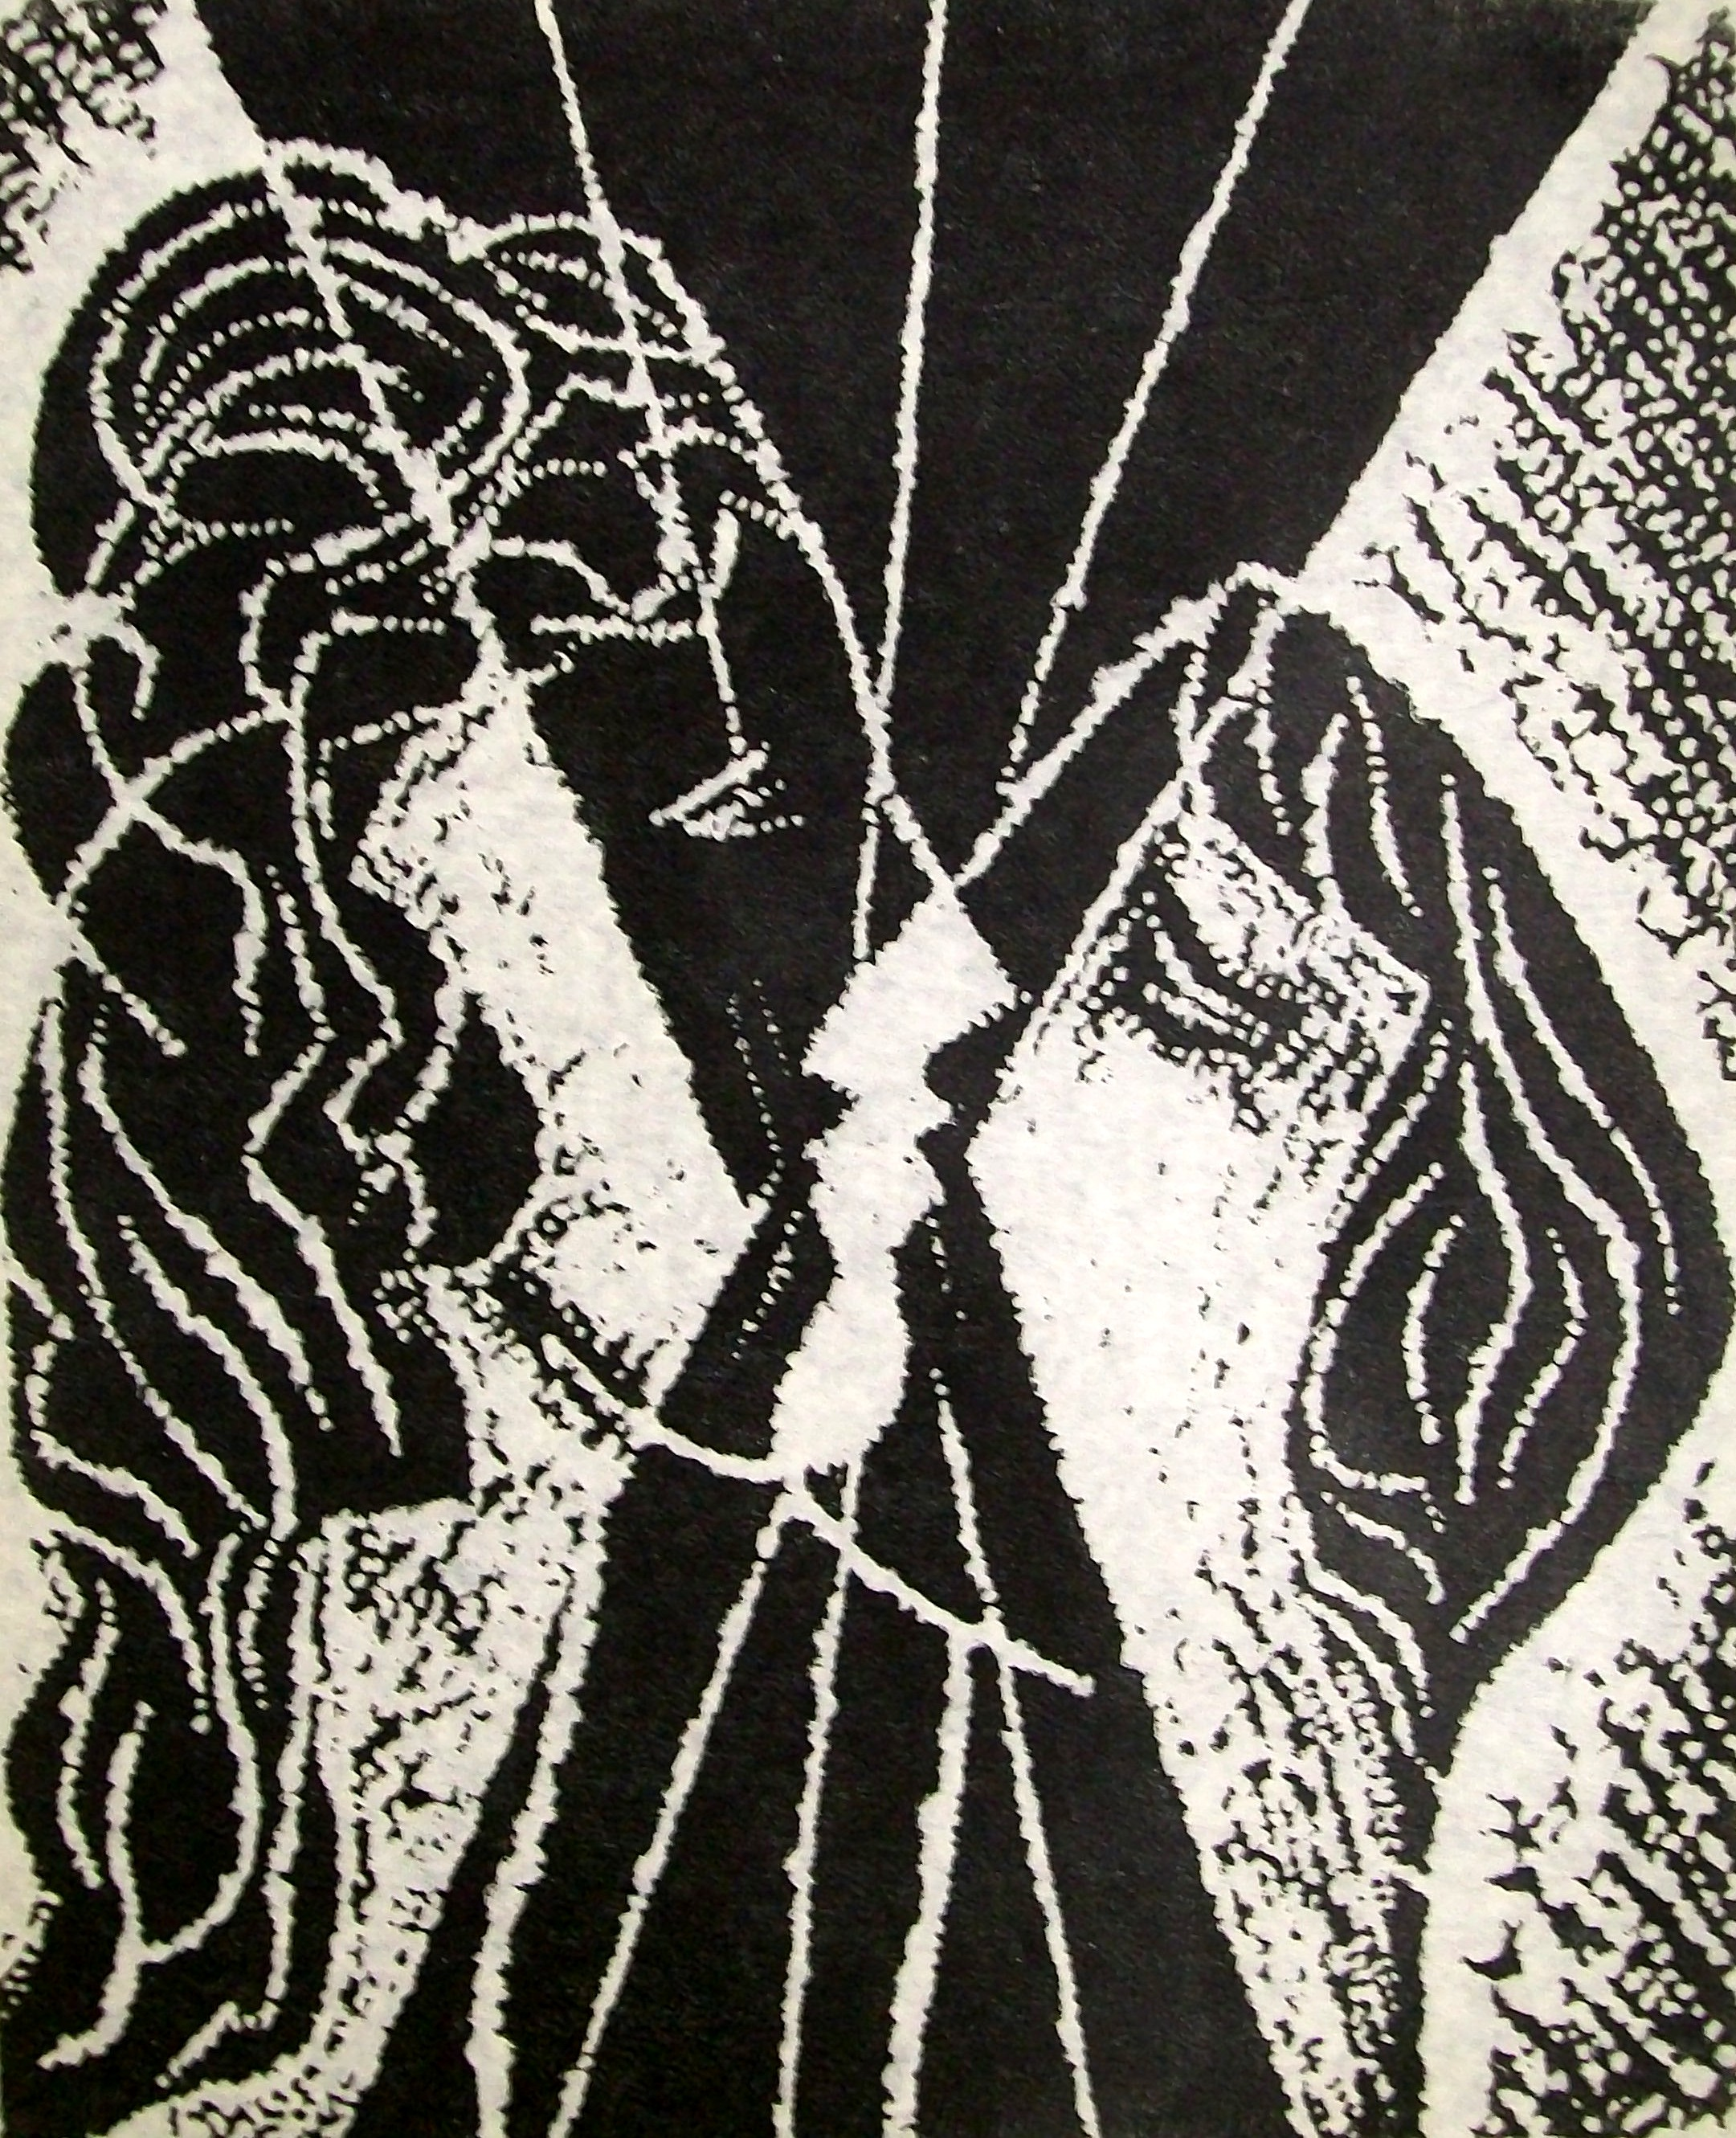 Stanley Lewis, Couple, Stone cut print on rice paper, 1971, 61.5x46cm